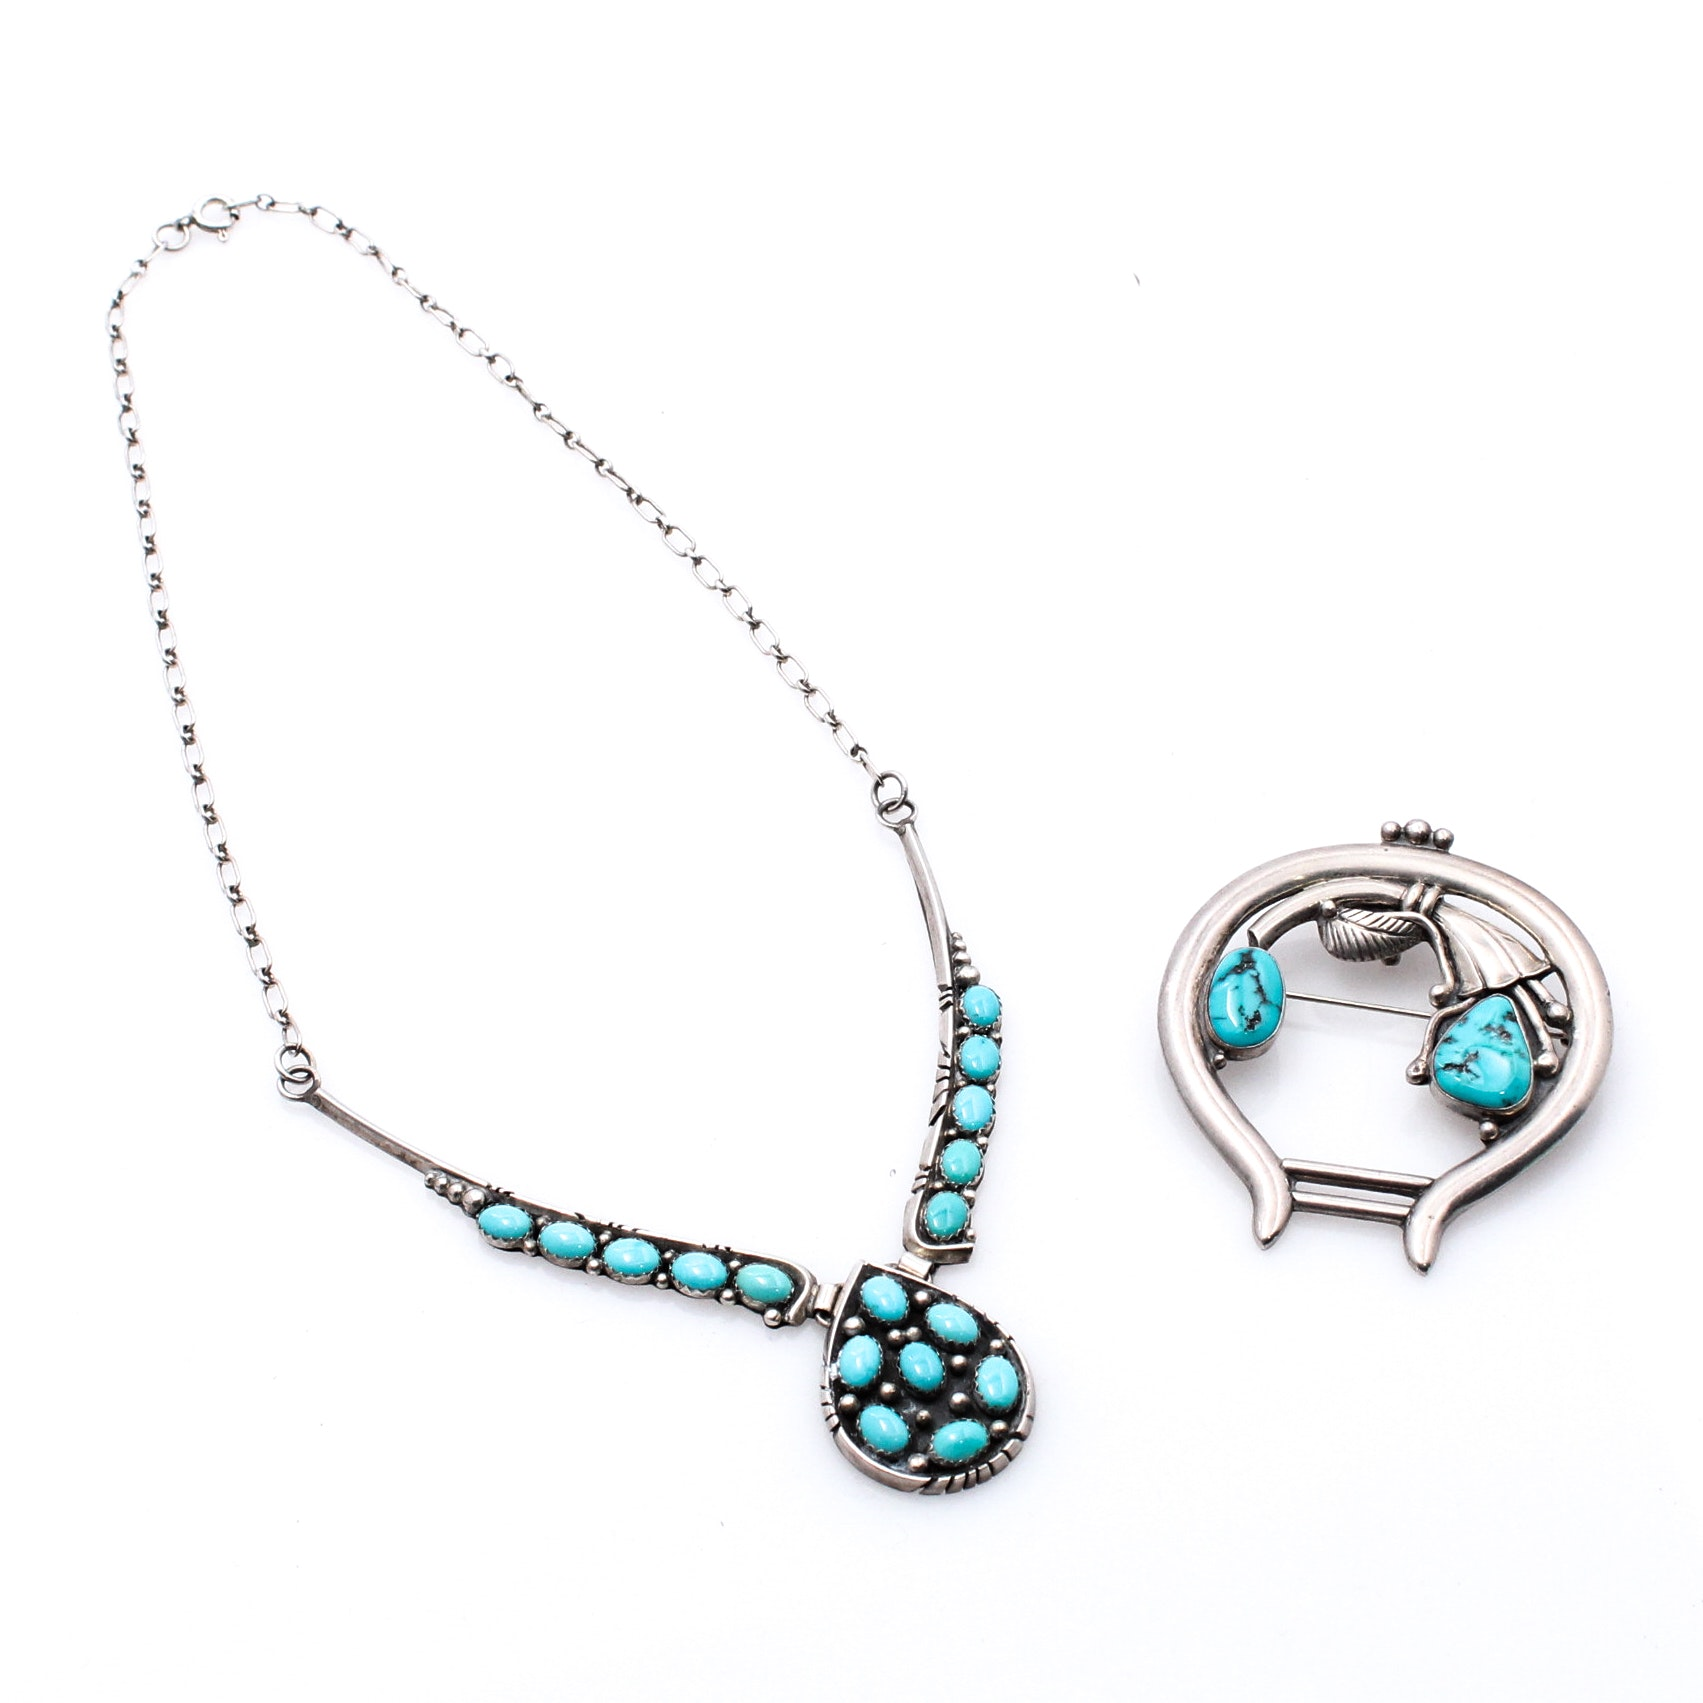 Southwestern Style Sterling Silver and Turquoise Necklace and Brooch